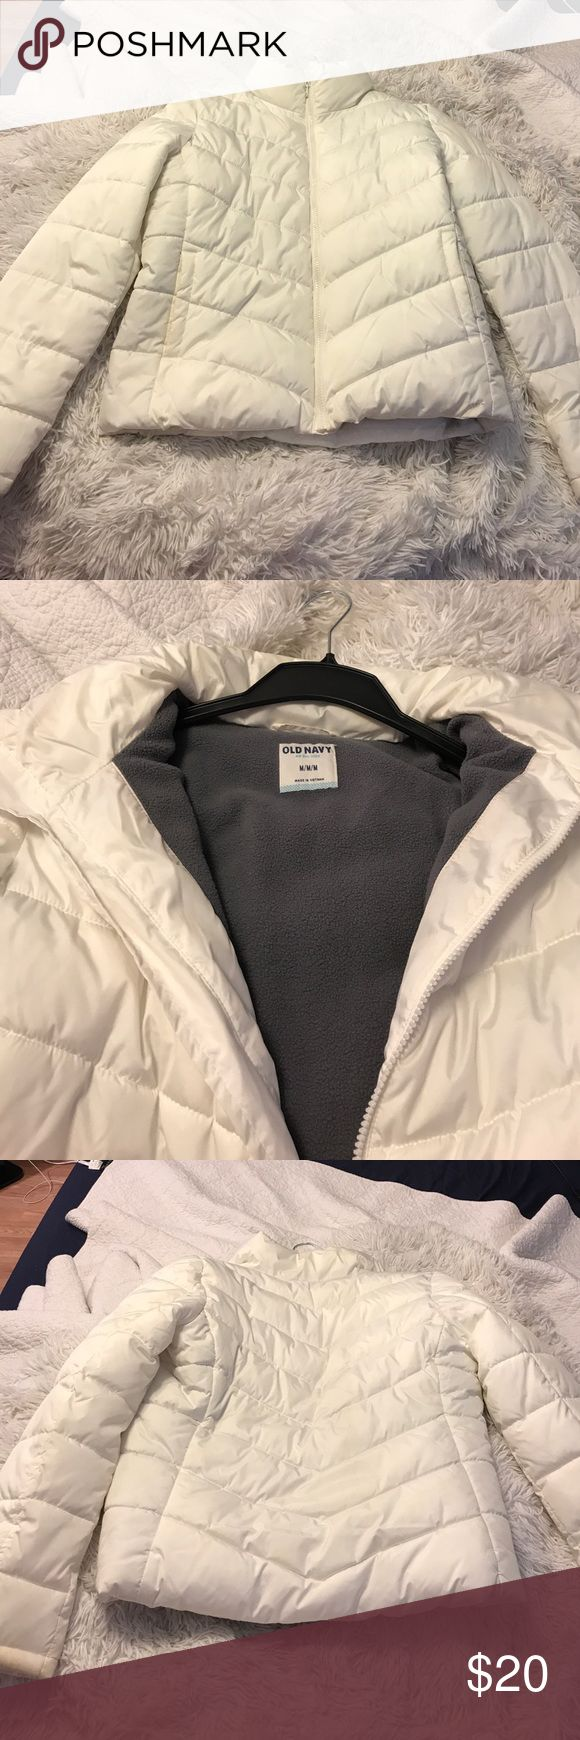 Old Navy White Puffer Jacket Sz M Worn once Old Navy Puffer Jacket Sz M. White Old Navy Jackets & Coats Puffers